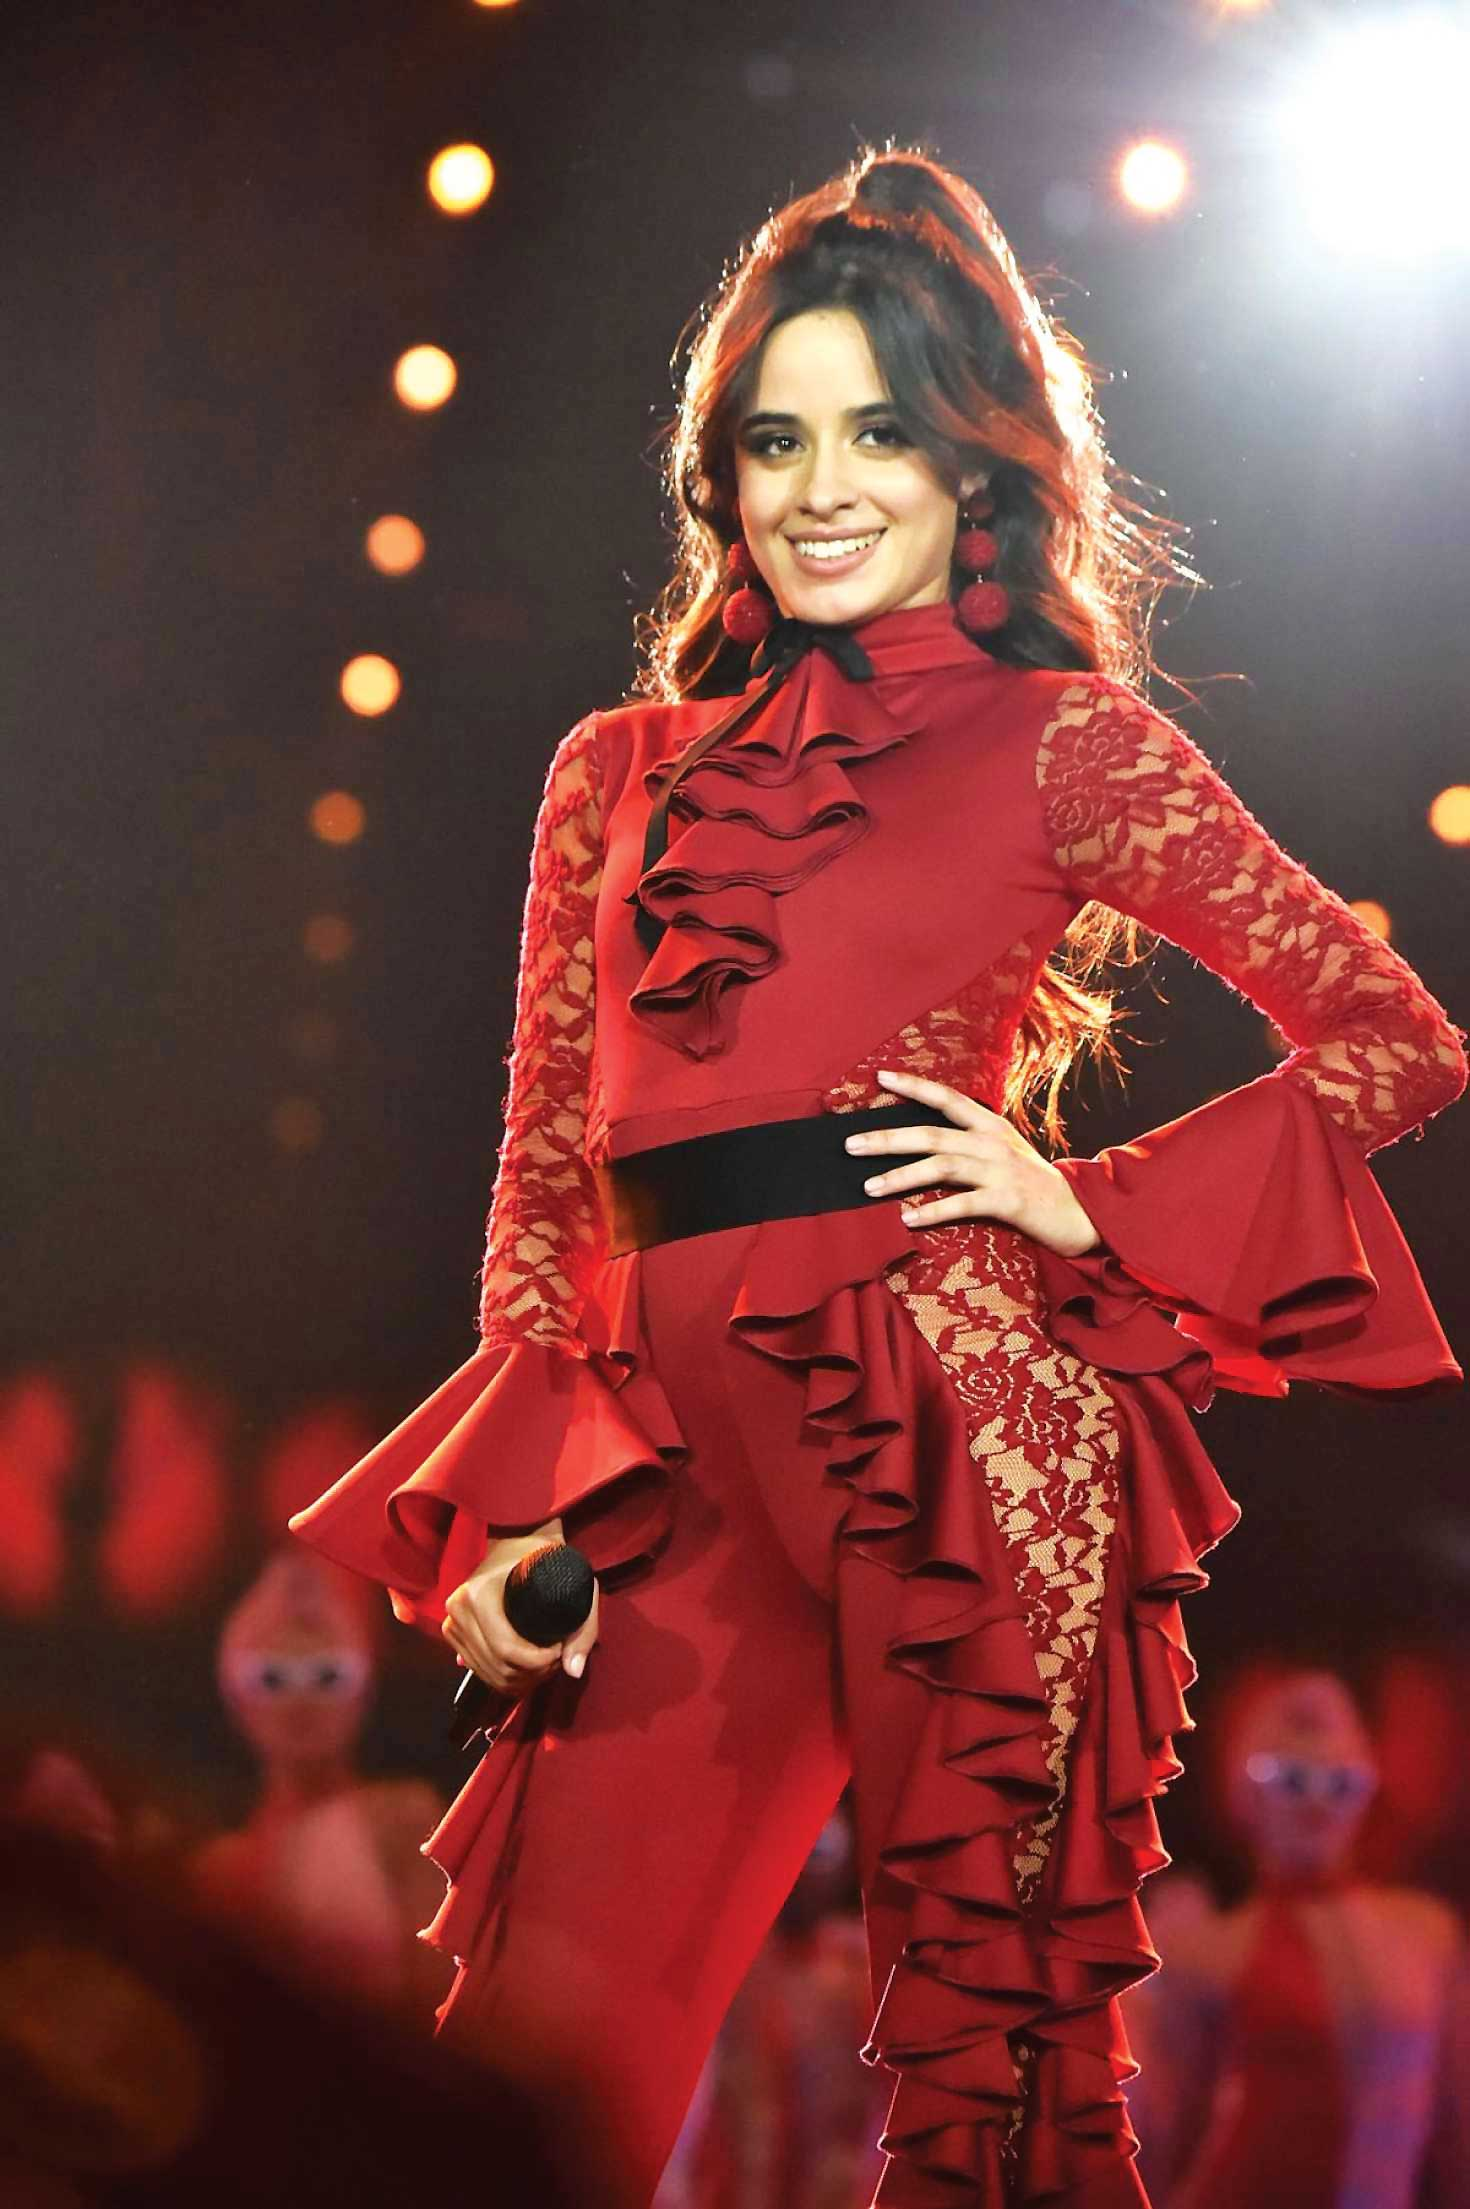 Camila-Cabello-Performs-at-2017-MTV-Europe-Music-Awards--07